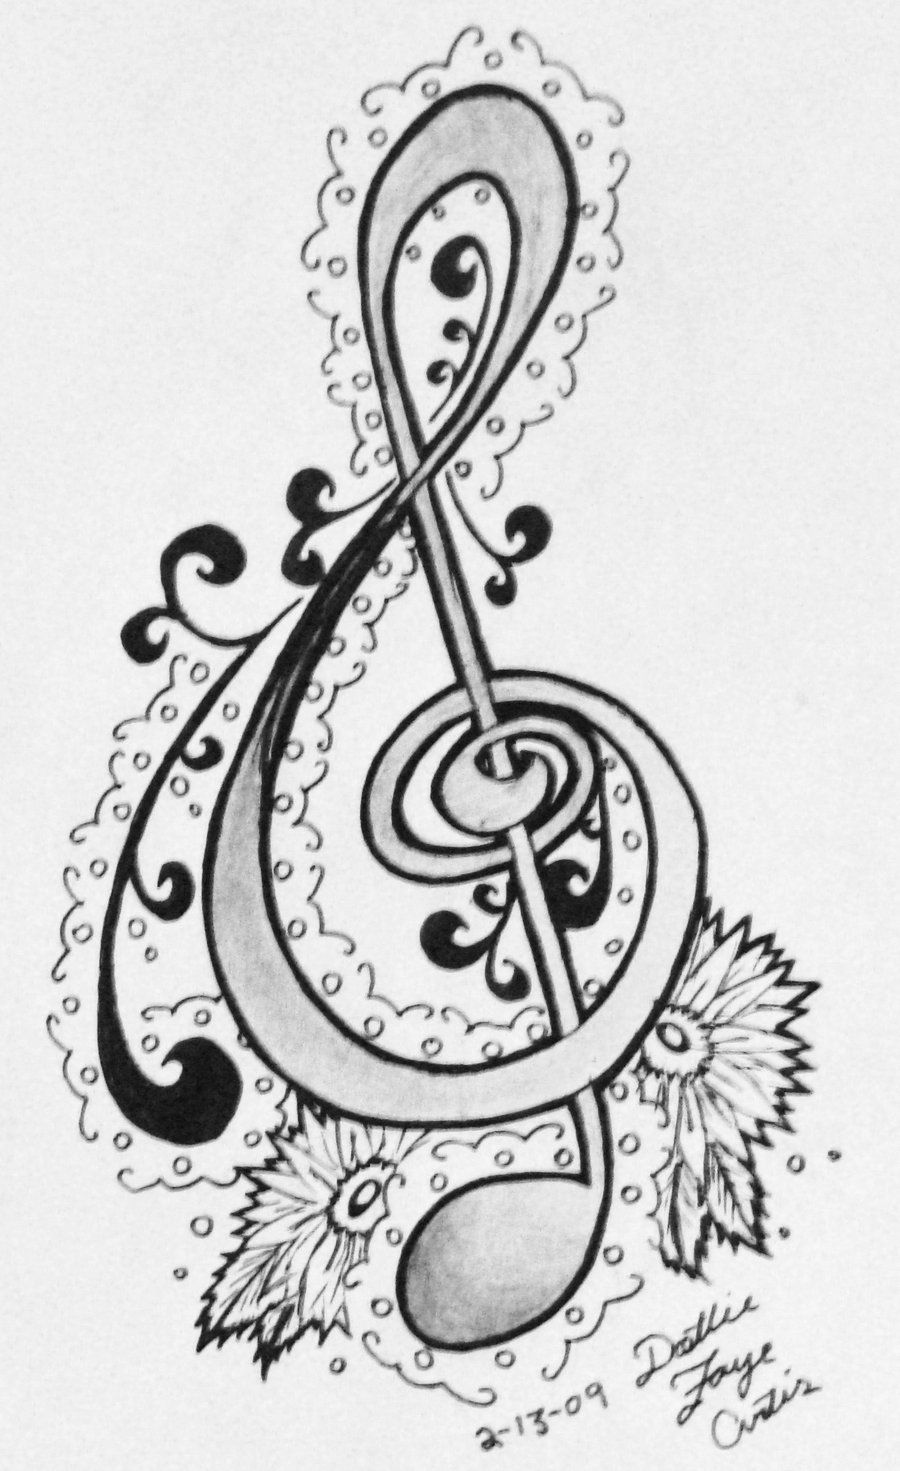 Cool Treble Clef How To Draw Hands Treble Clef Tattoo Treble Clef